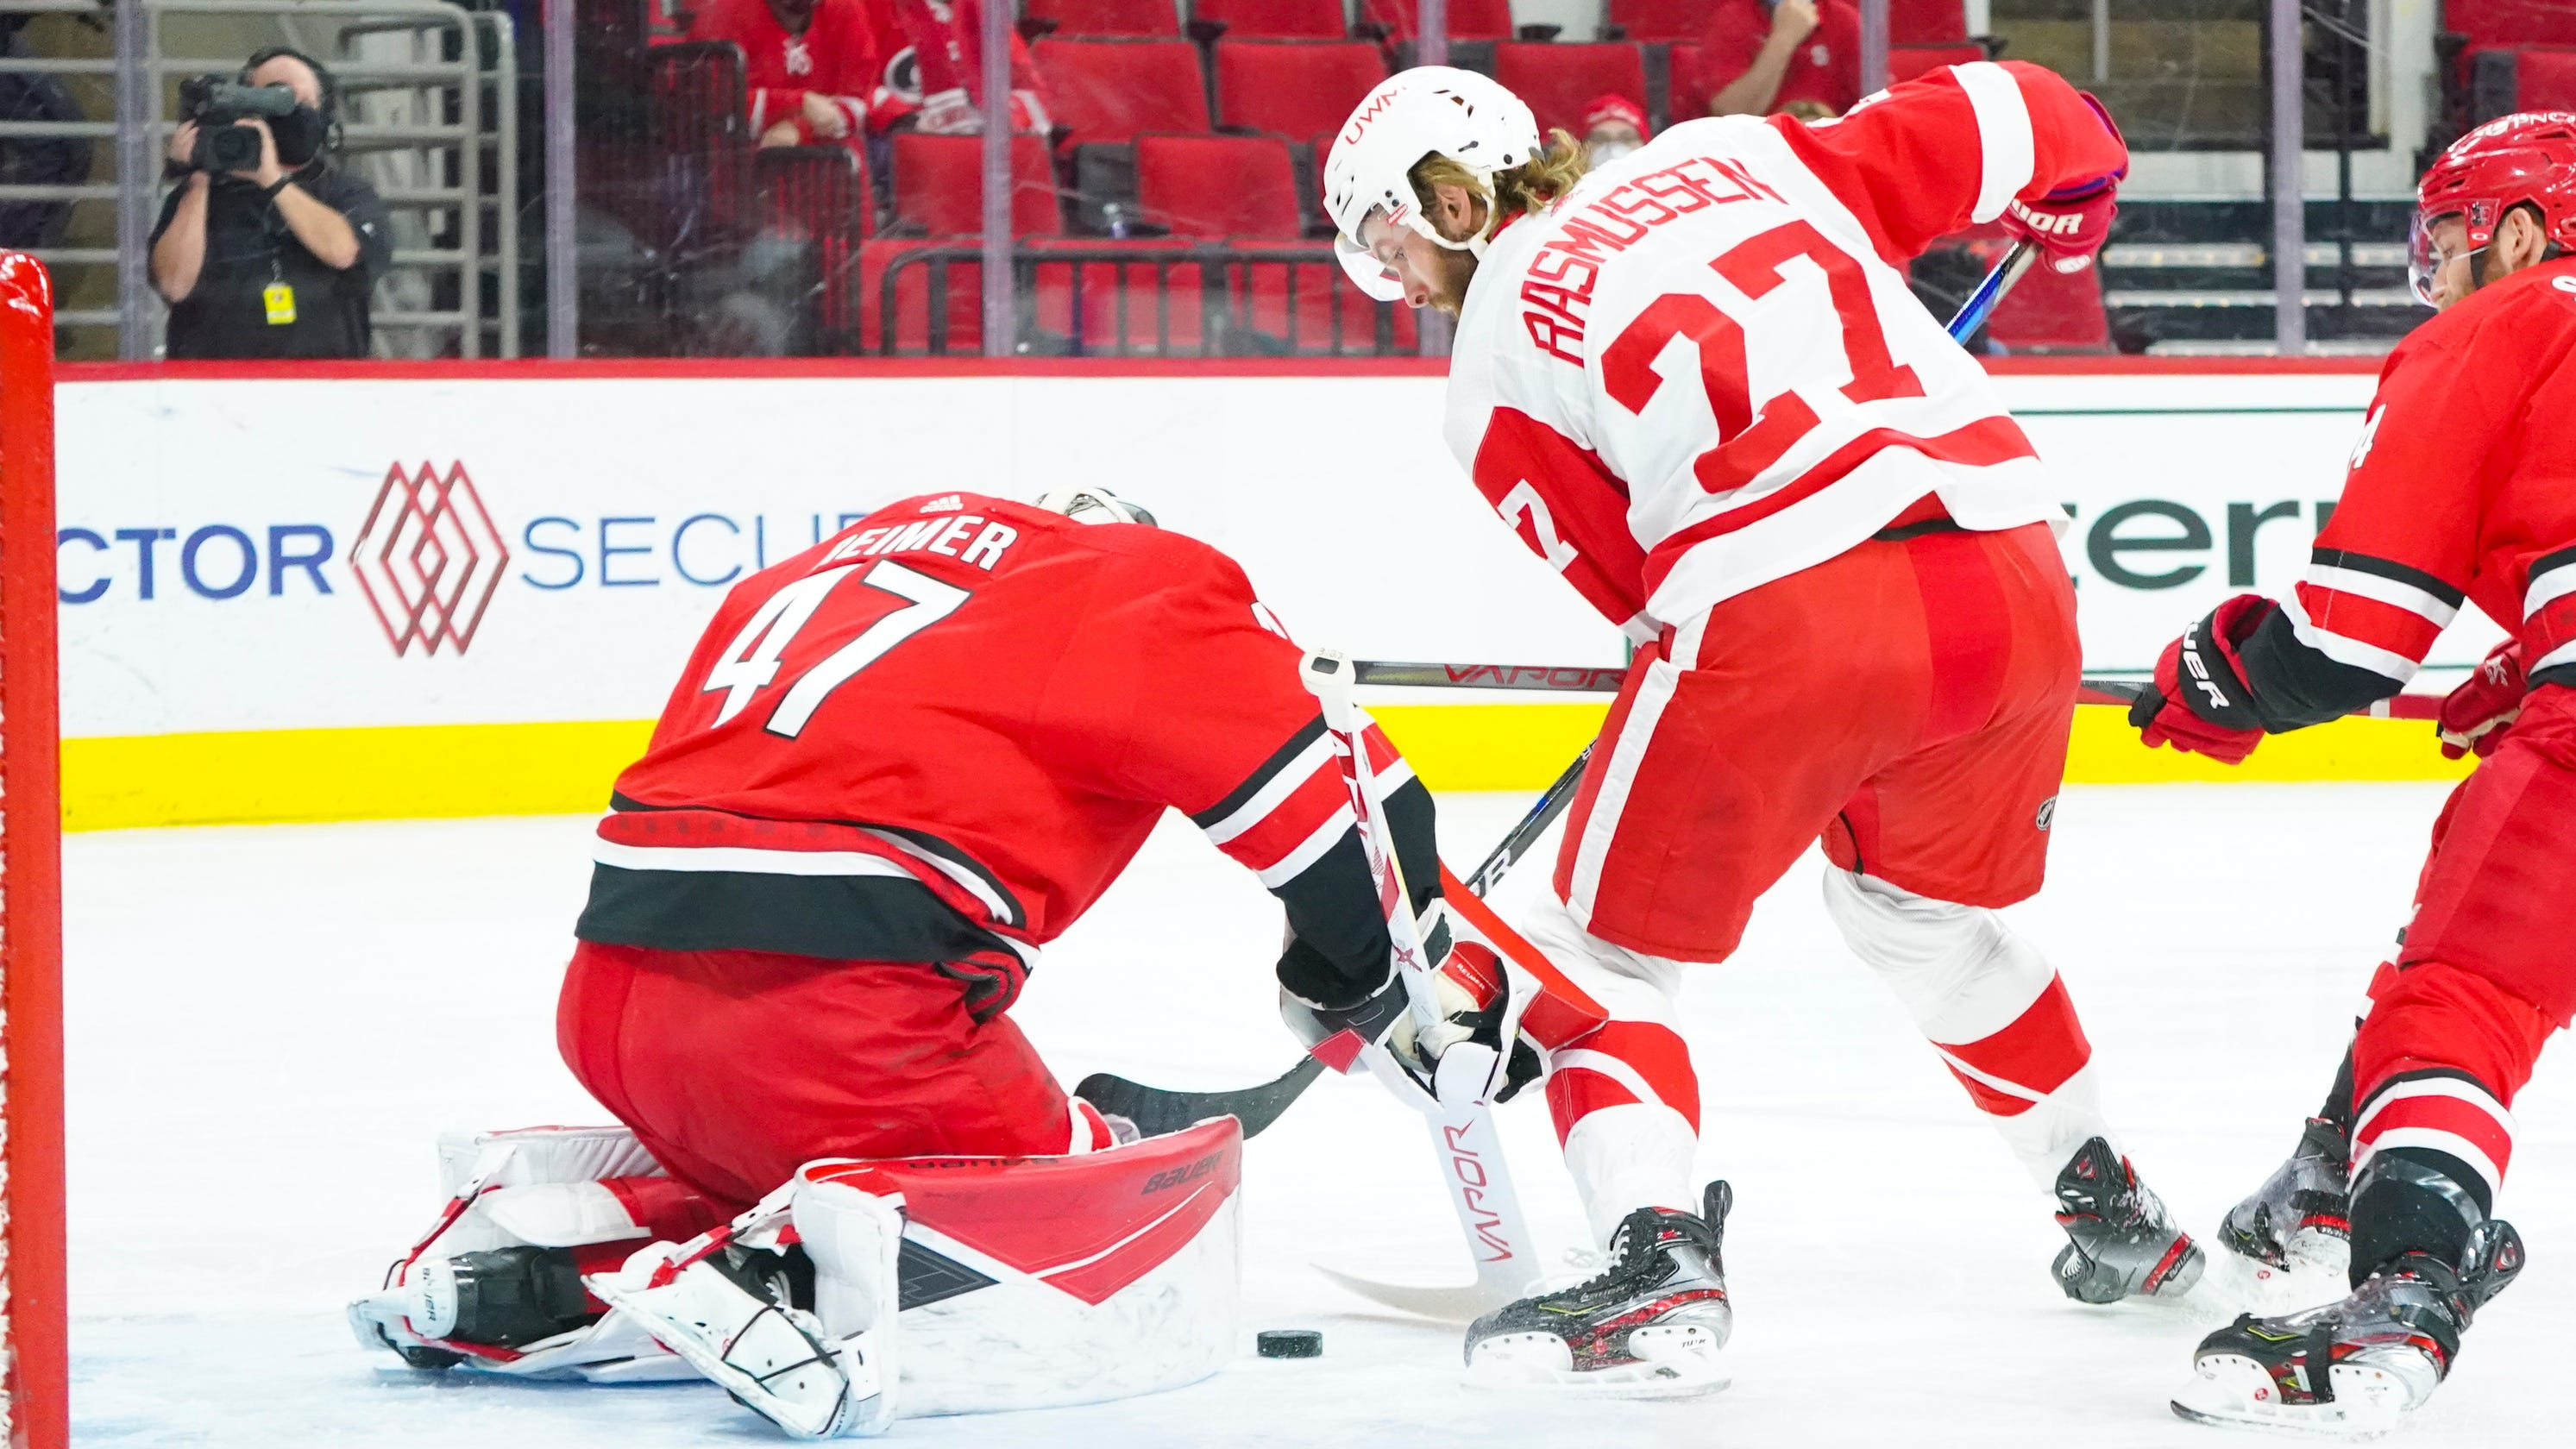 Detroit Red Wings find offense right after big trade, win, 3-1, at Carolina Hurricanes